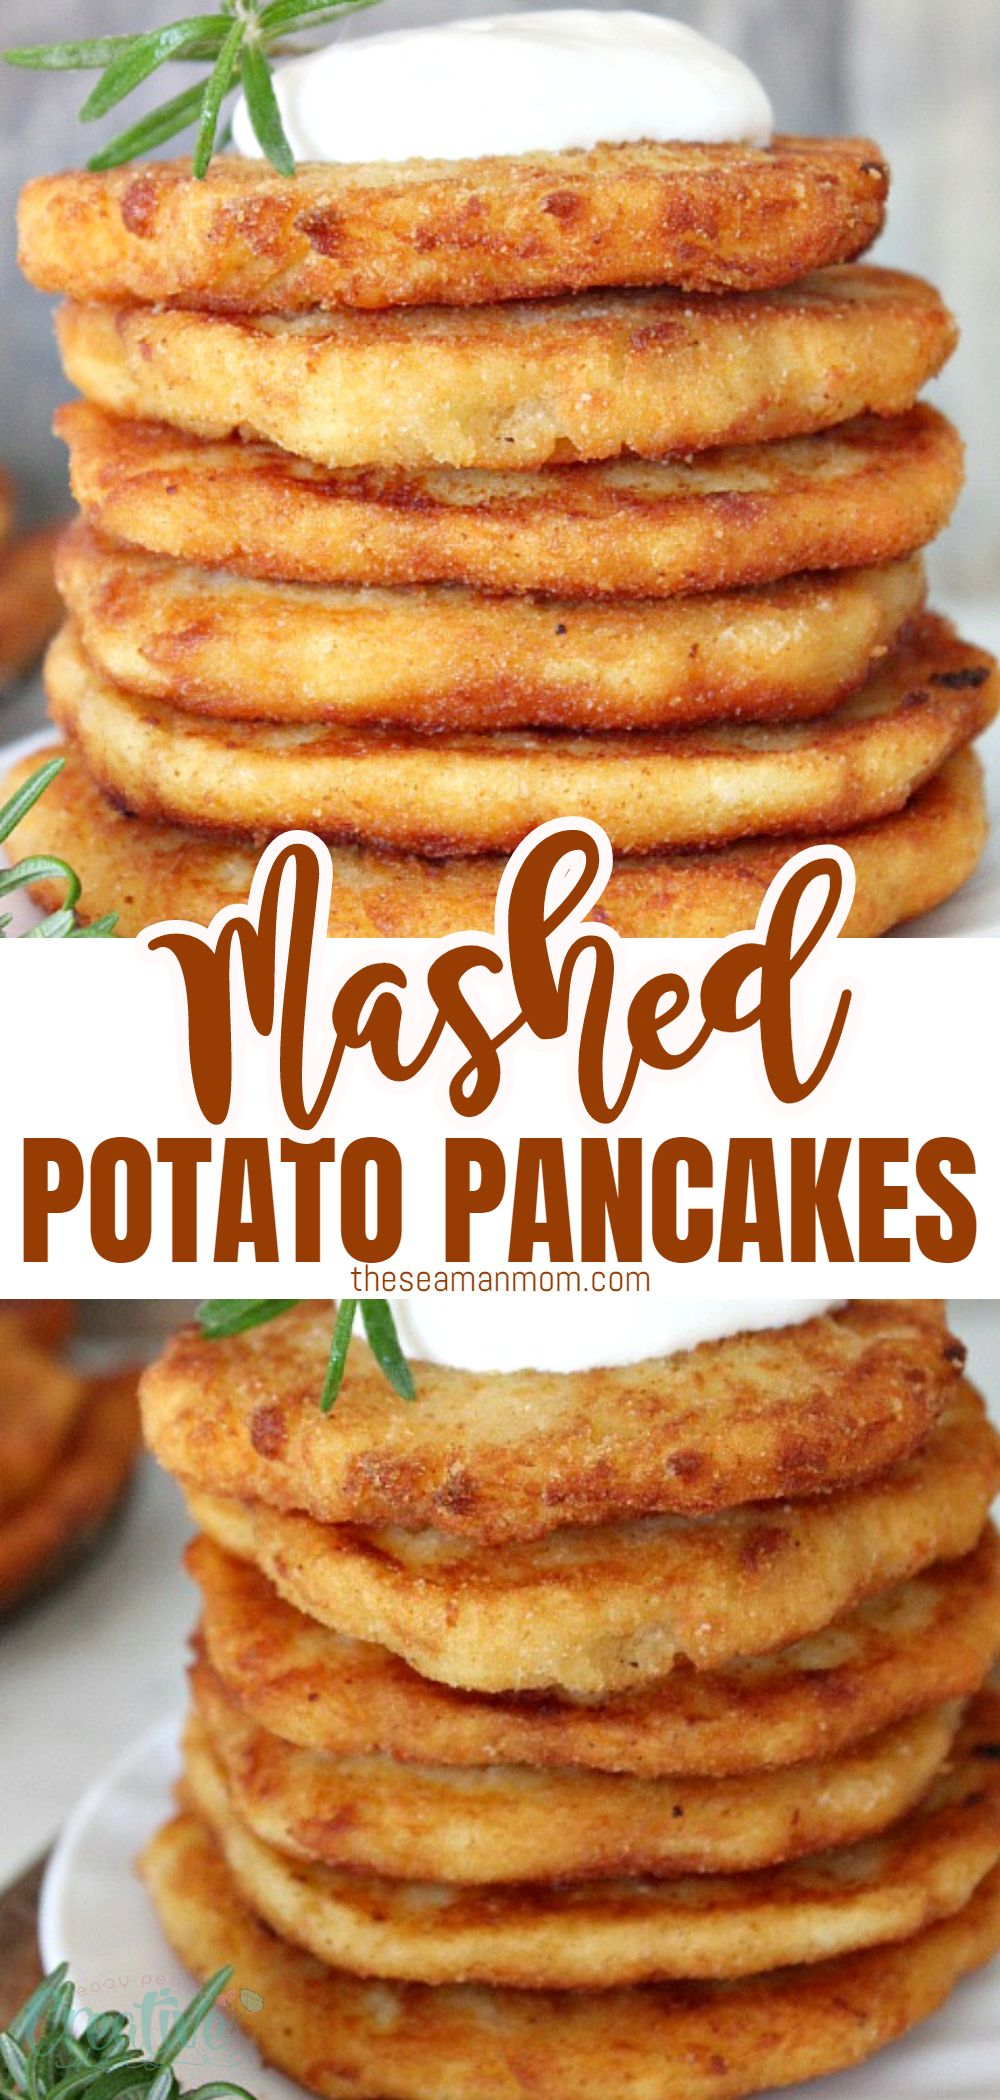 Make the most of Thanksgiving leftovers with these delicious mashed potato pancakes! Crisp on the outside but moist and fluffy inside, these are a great side dish or a meal on their own! via @petroneagu